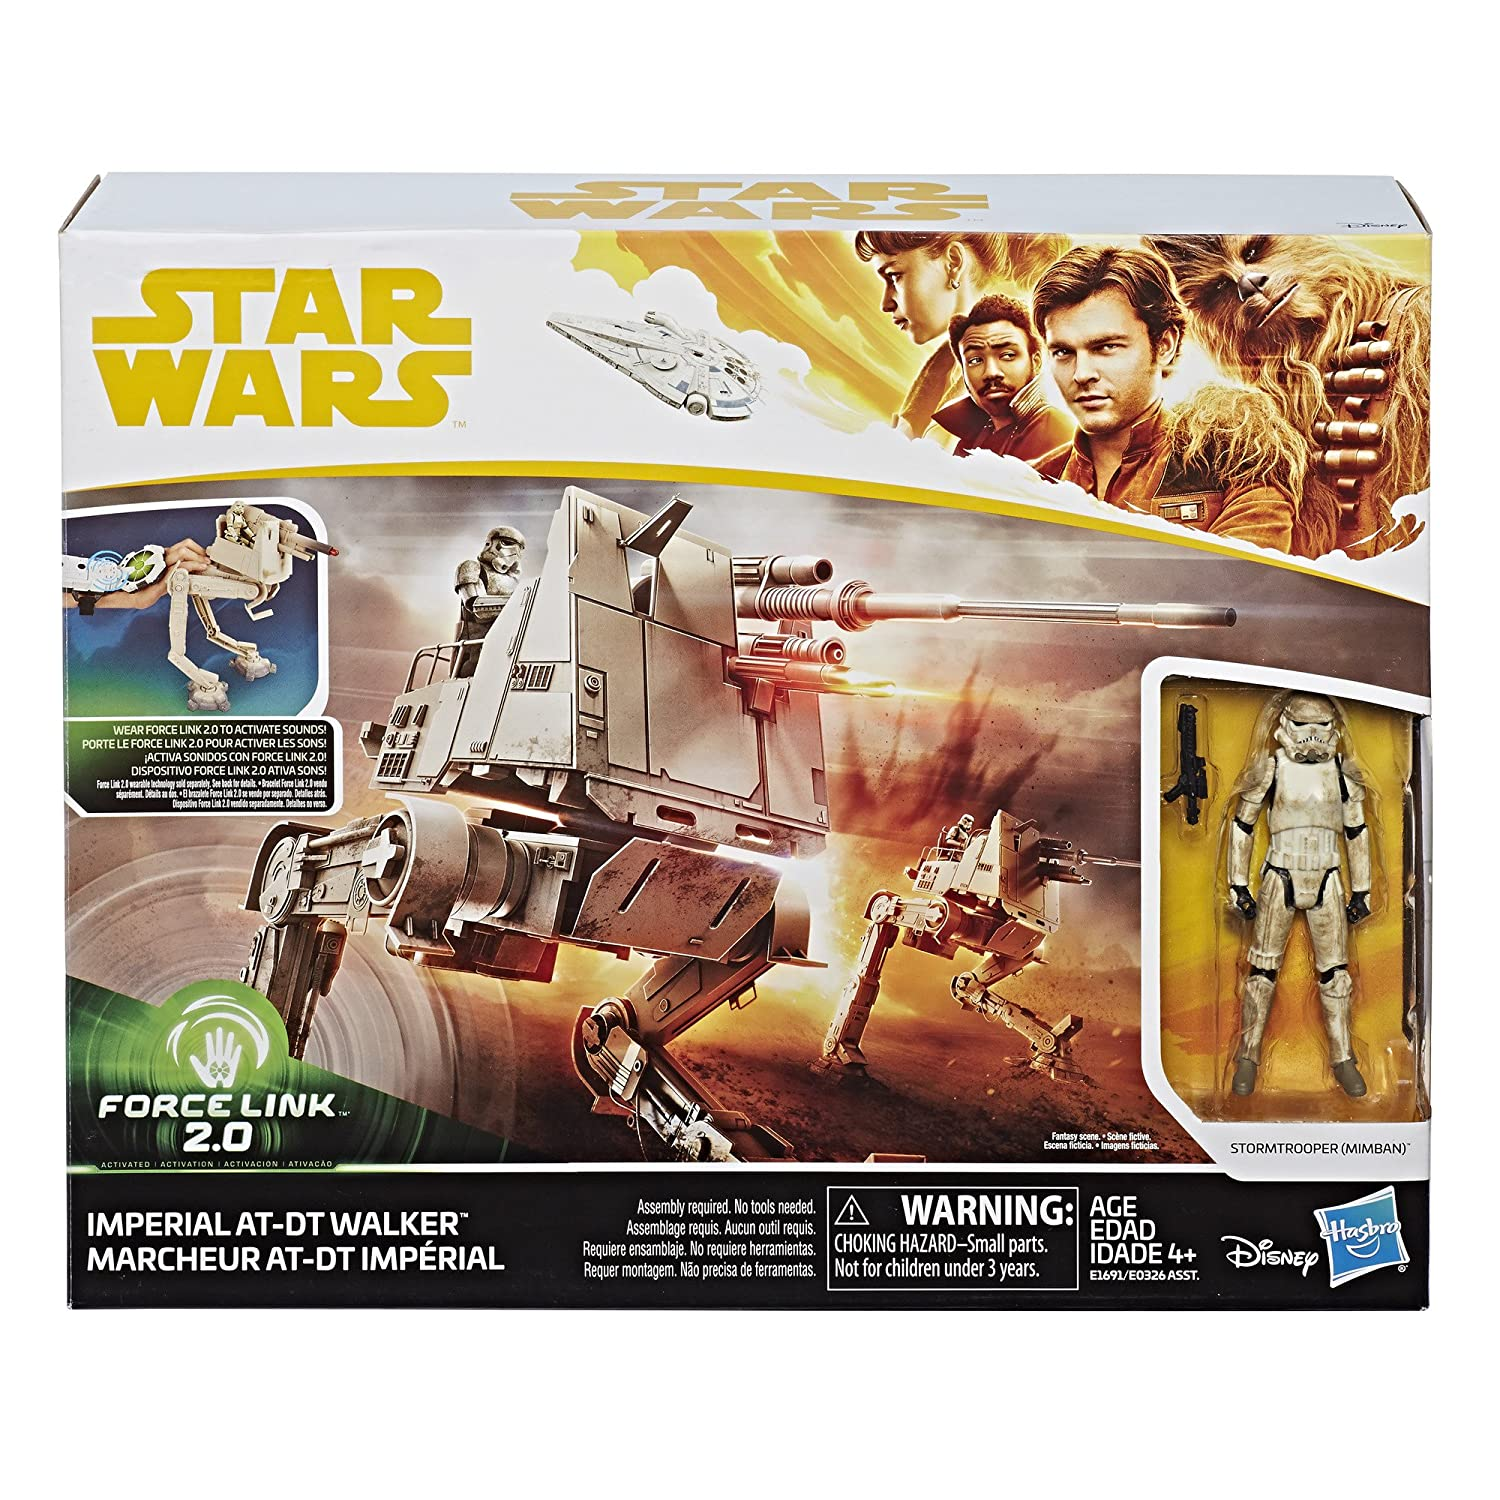 Star Wars Imperial AT-DT Walker with Stormtrooper Force Link 2.0 Hasbro E1691 Mimban